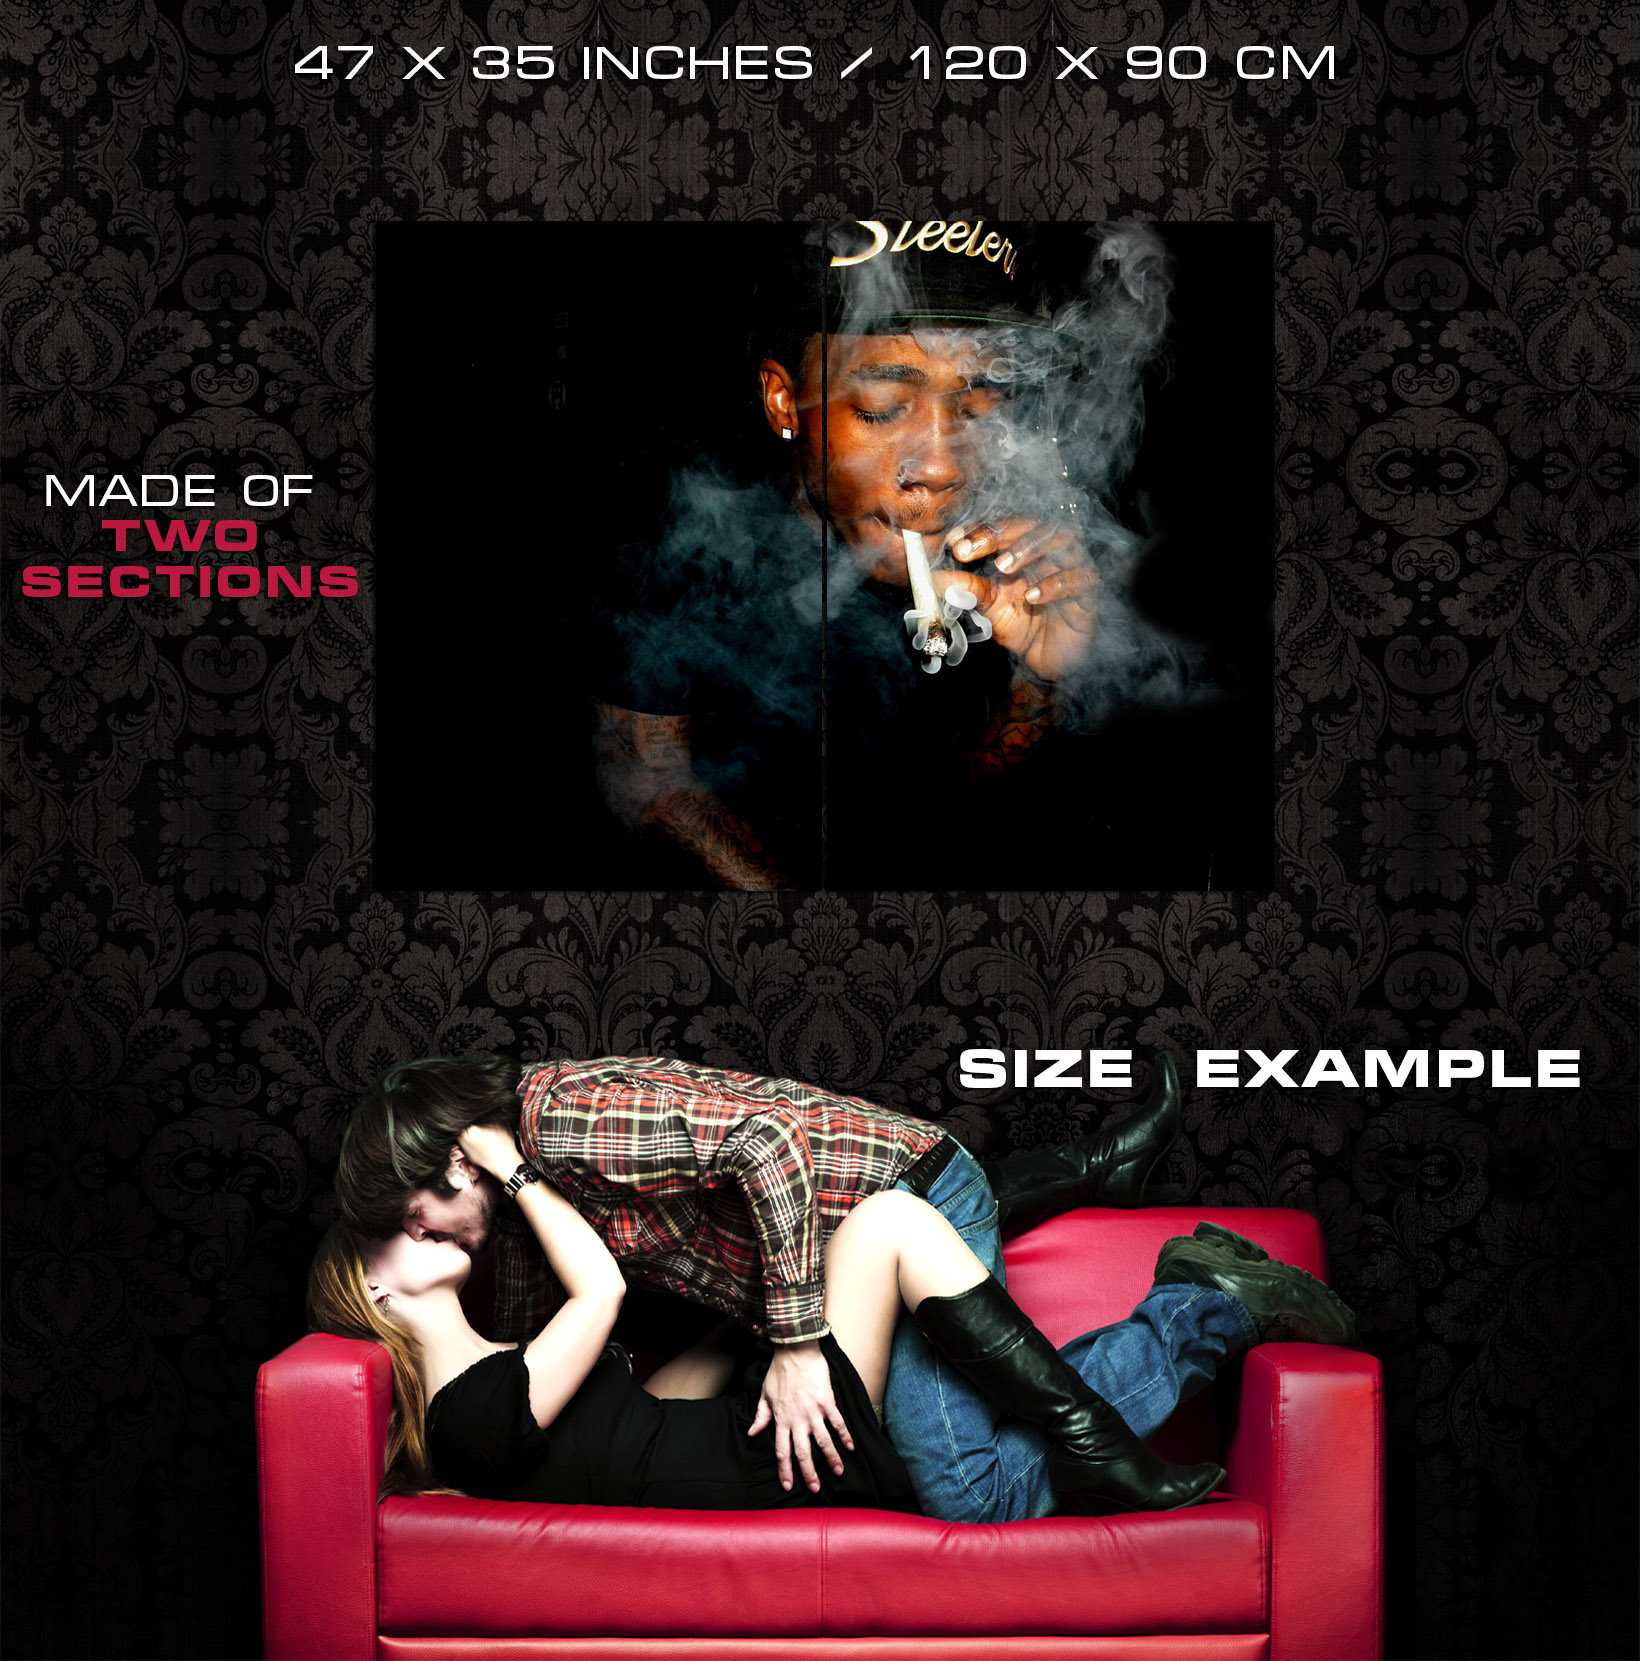 Dizzy Wright Smoke Smoke Smoke Rapper Rap Hip-Hop Music Giant Wall Print POSTER 0be7de